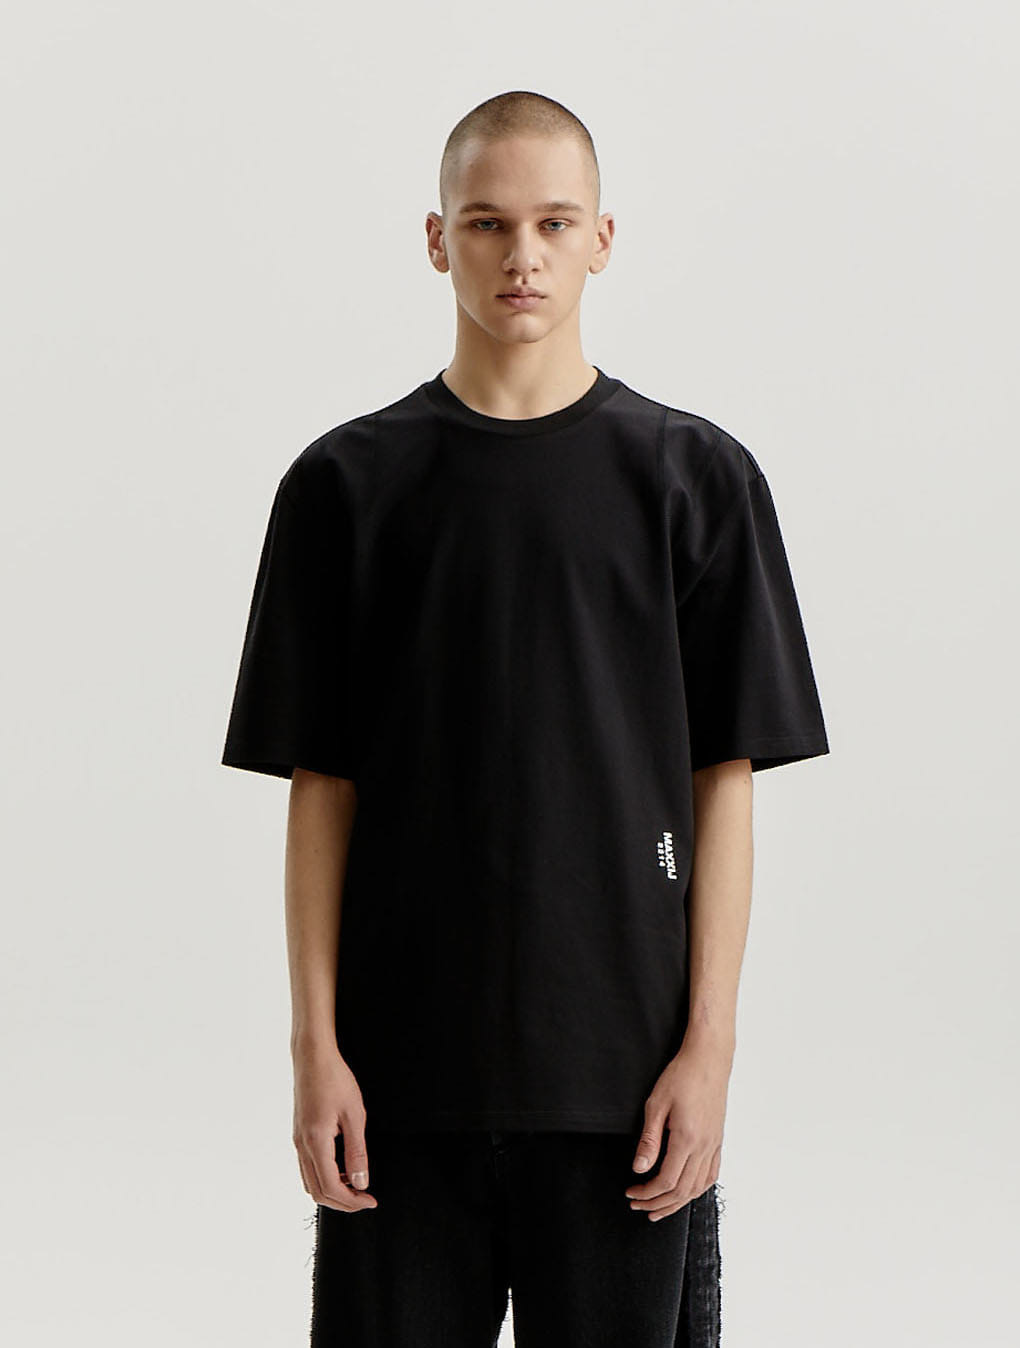 Black Signature Armhole Stitched Jersey T-shirt